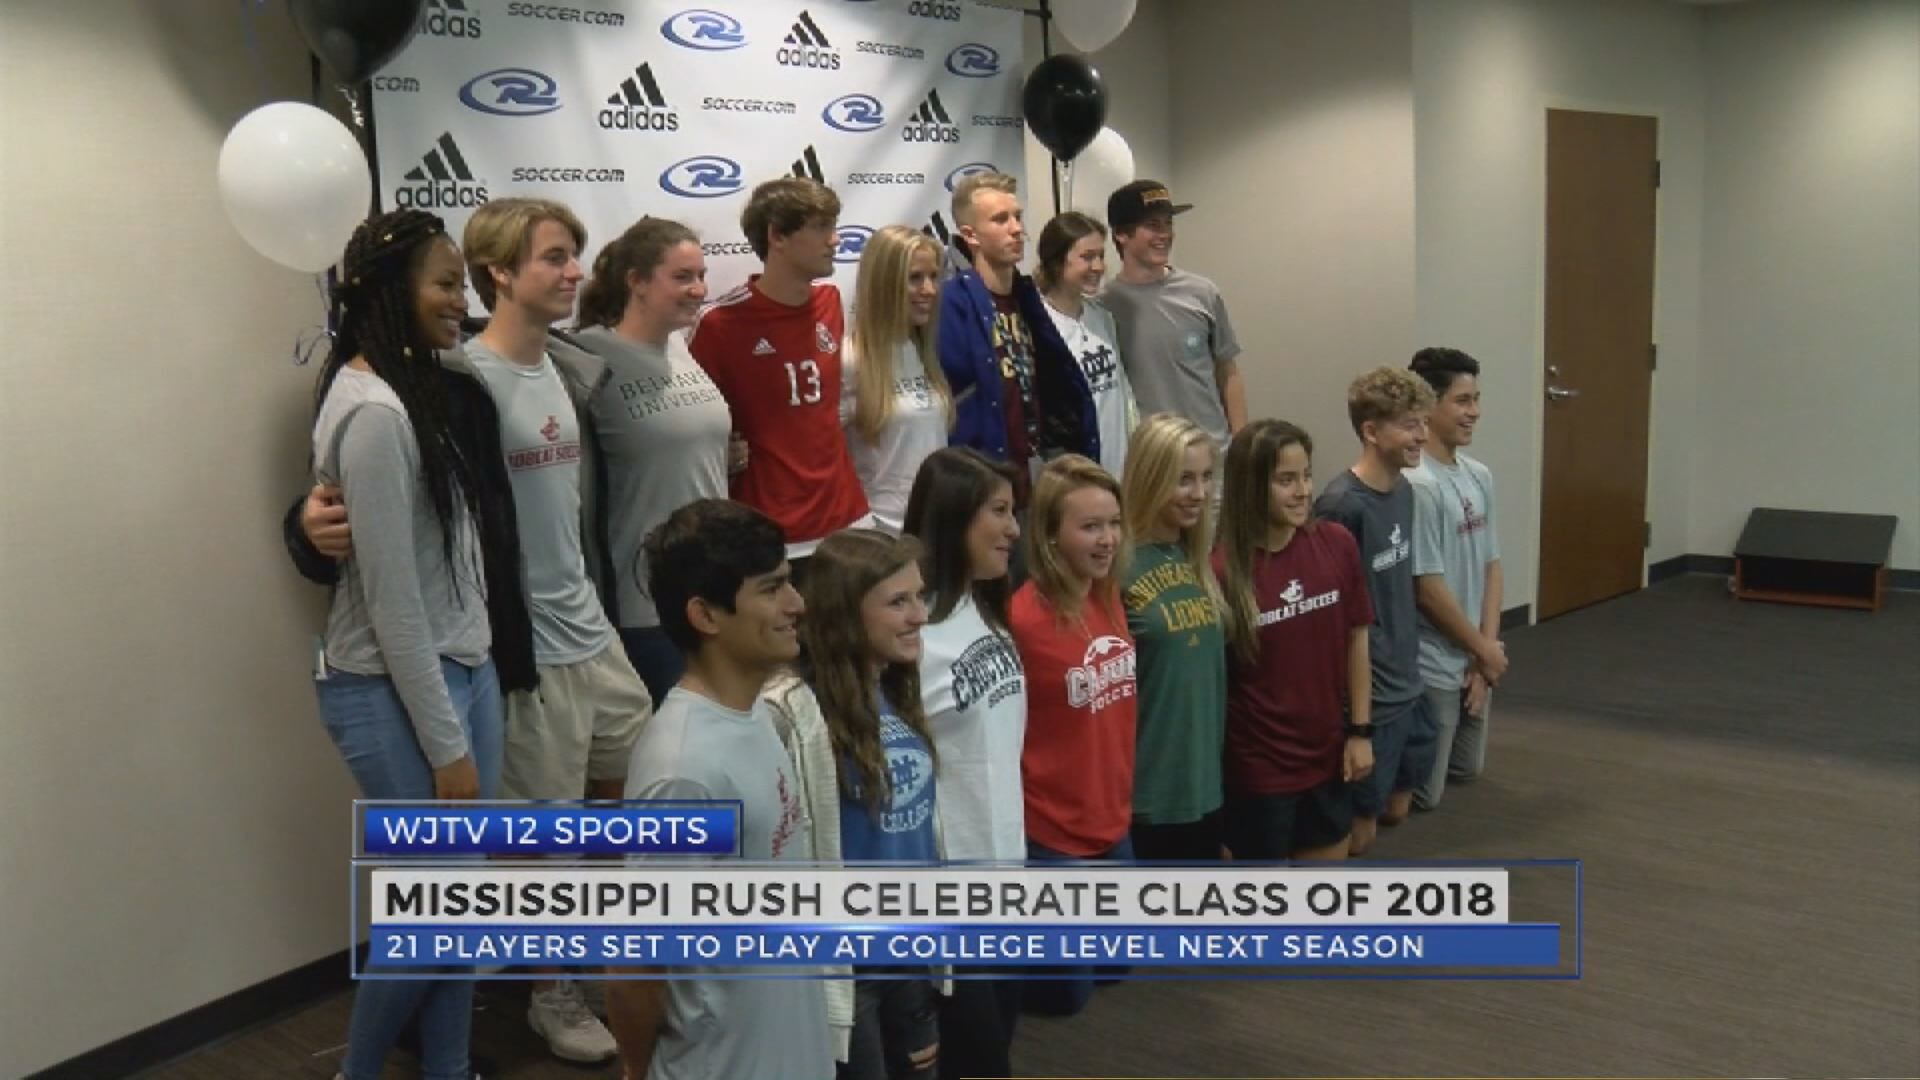 Mississippi_Rush_celebrate_Class_of_2018_0_20180222050824